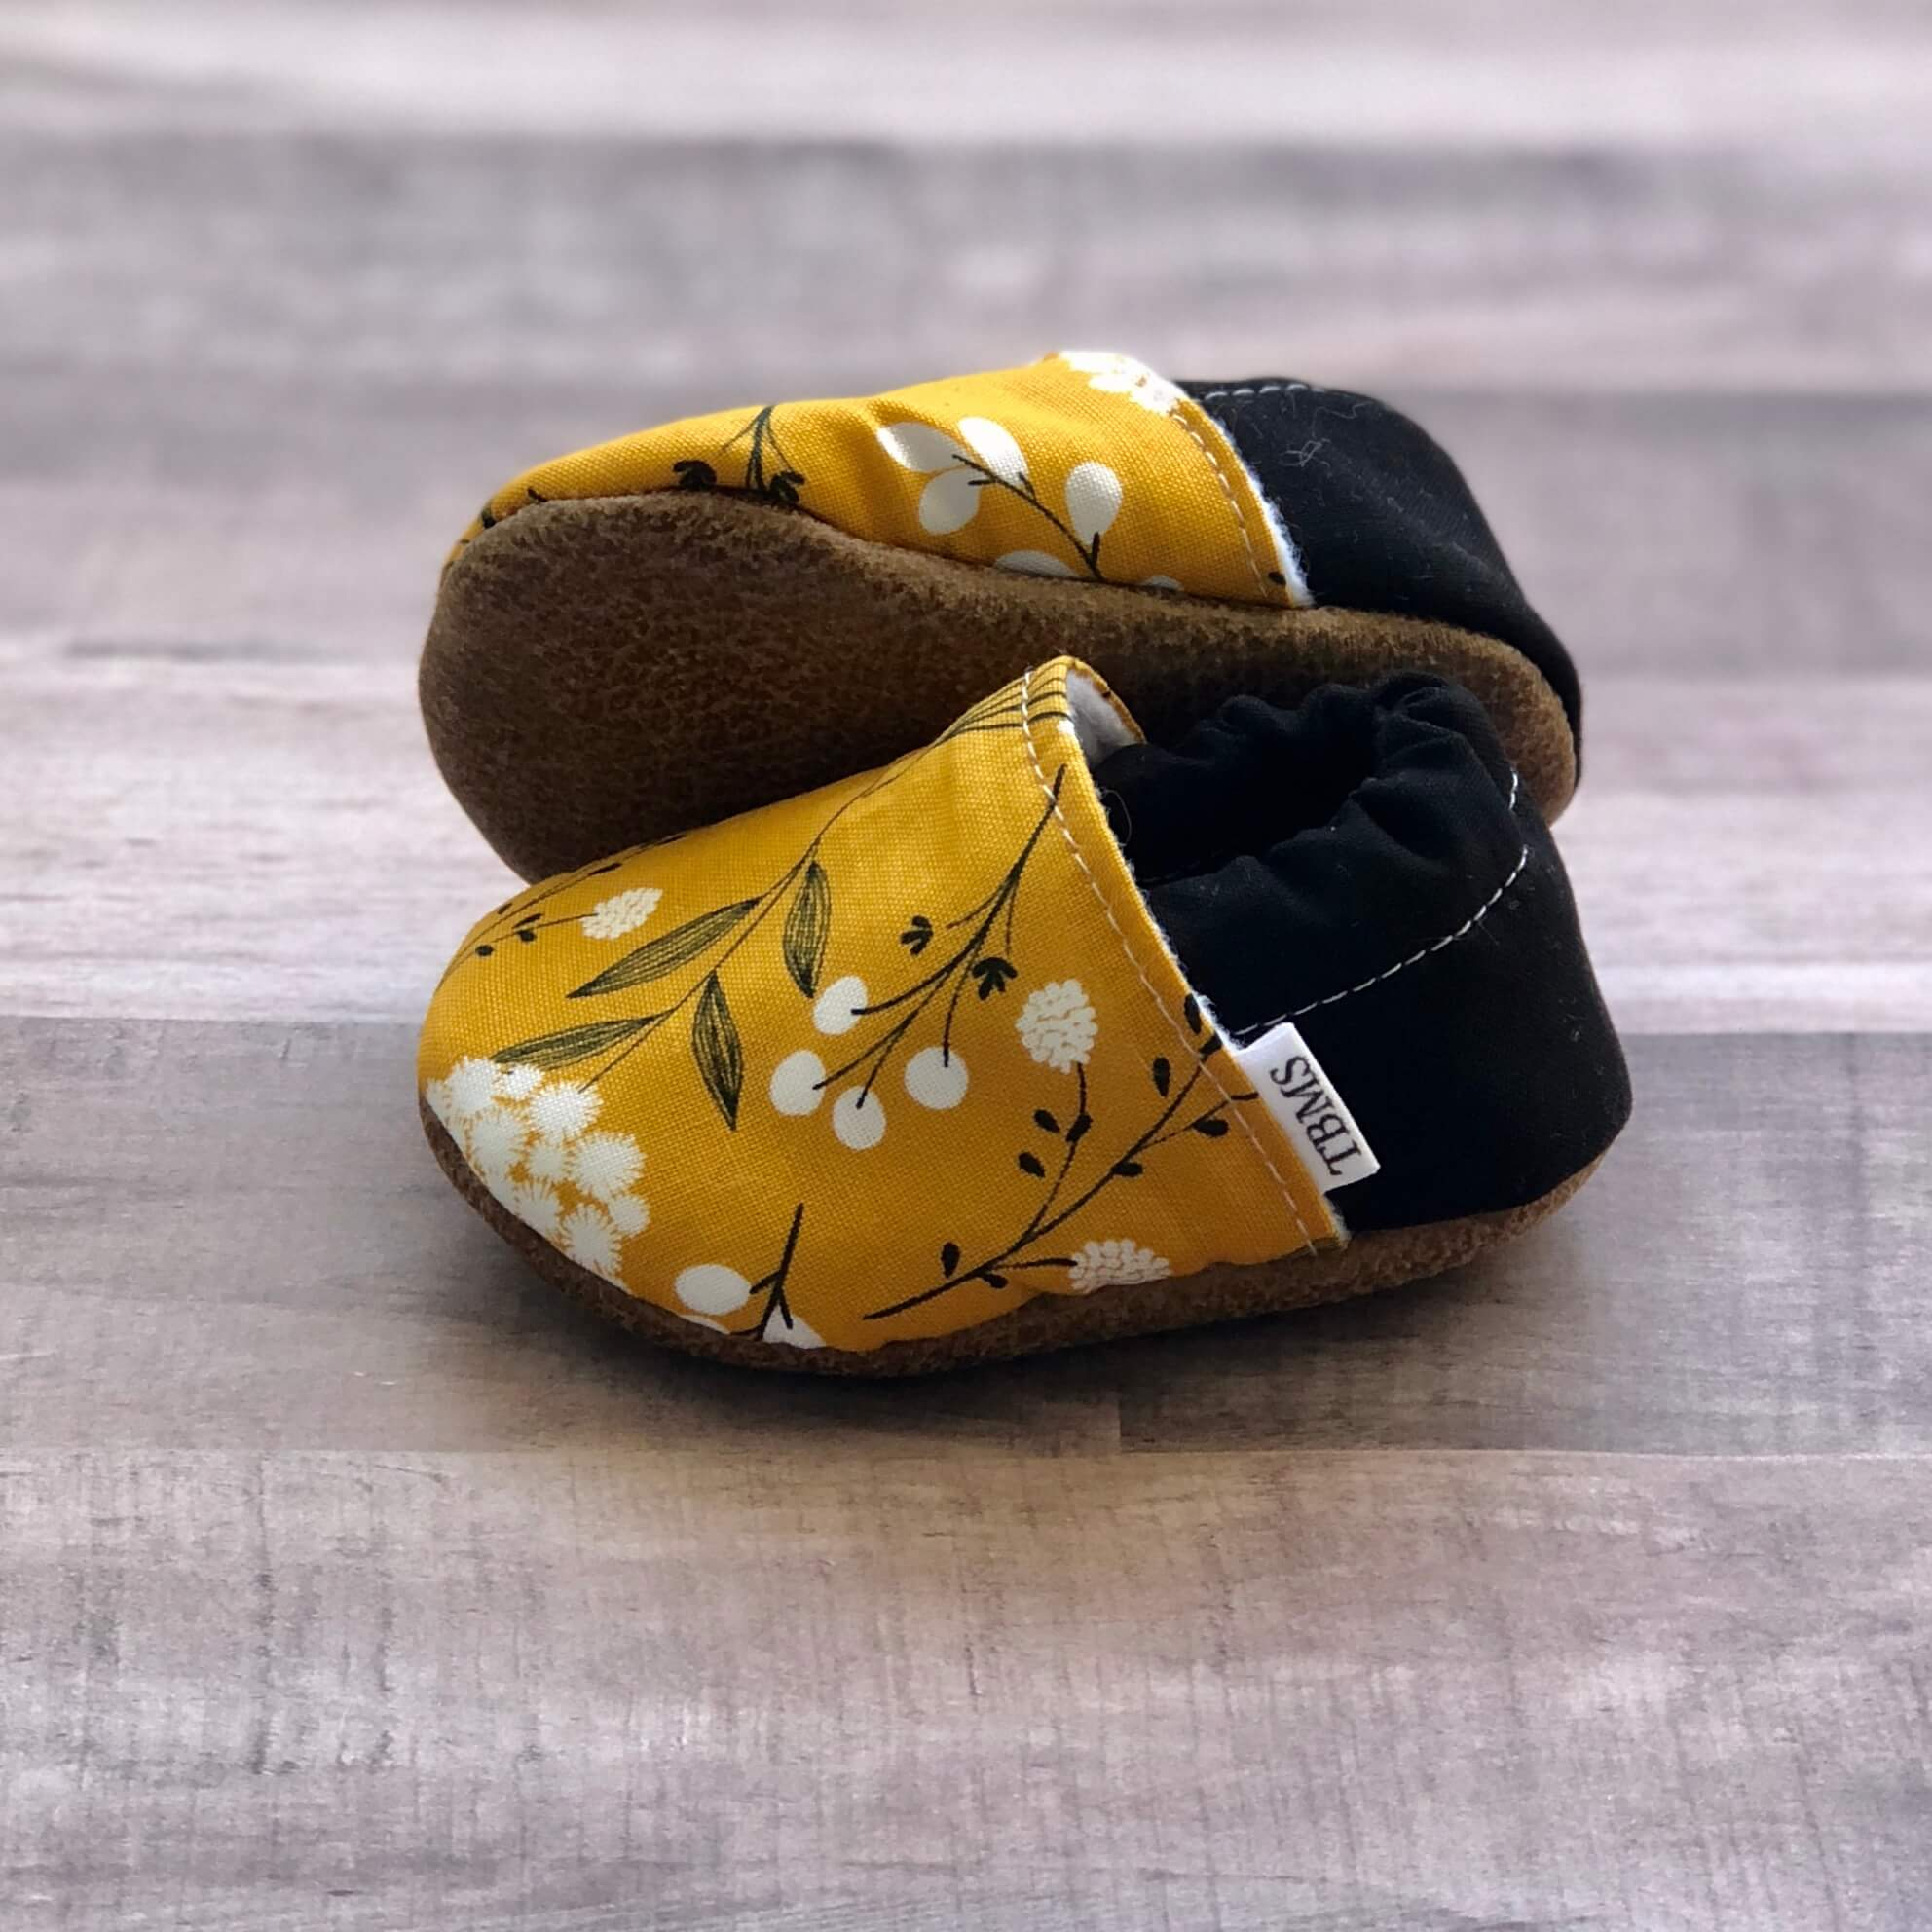 Trendy Baby Mocc Shop Mustard Floral Low Tops Jungle Pillows